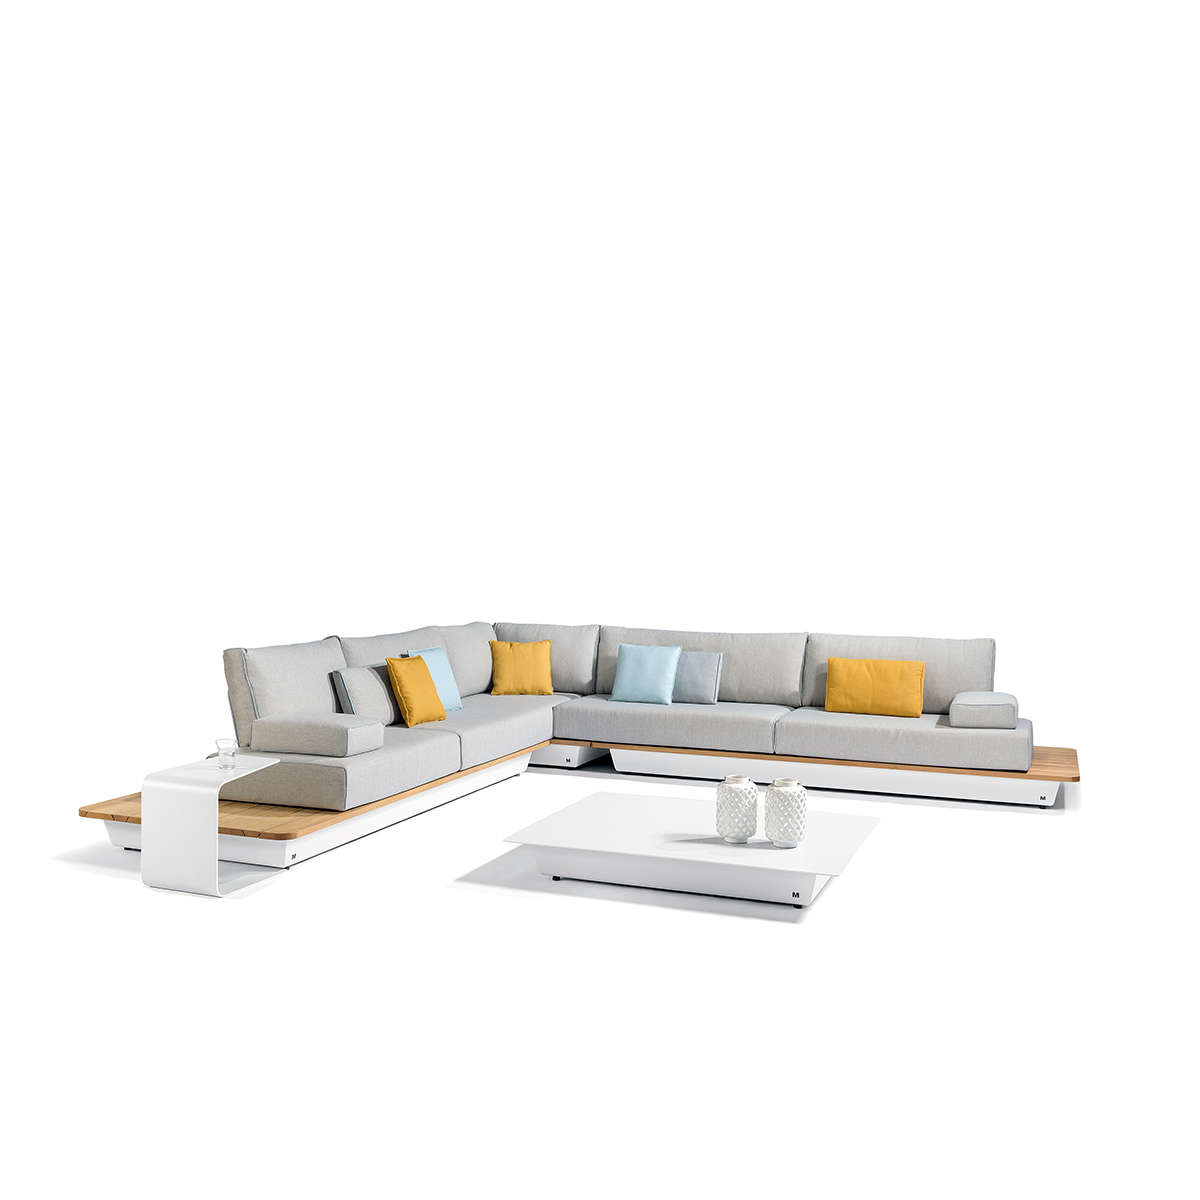 Manutti Air Modular Sofa Hr 6